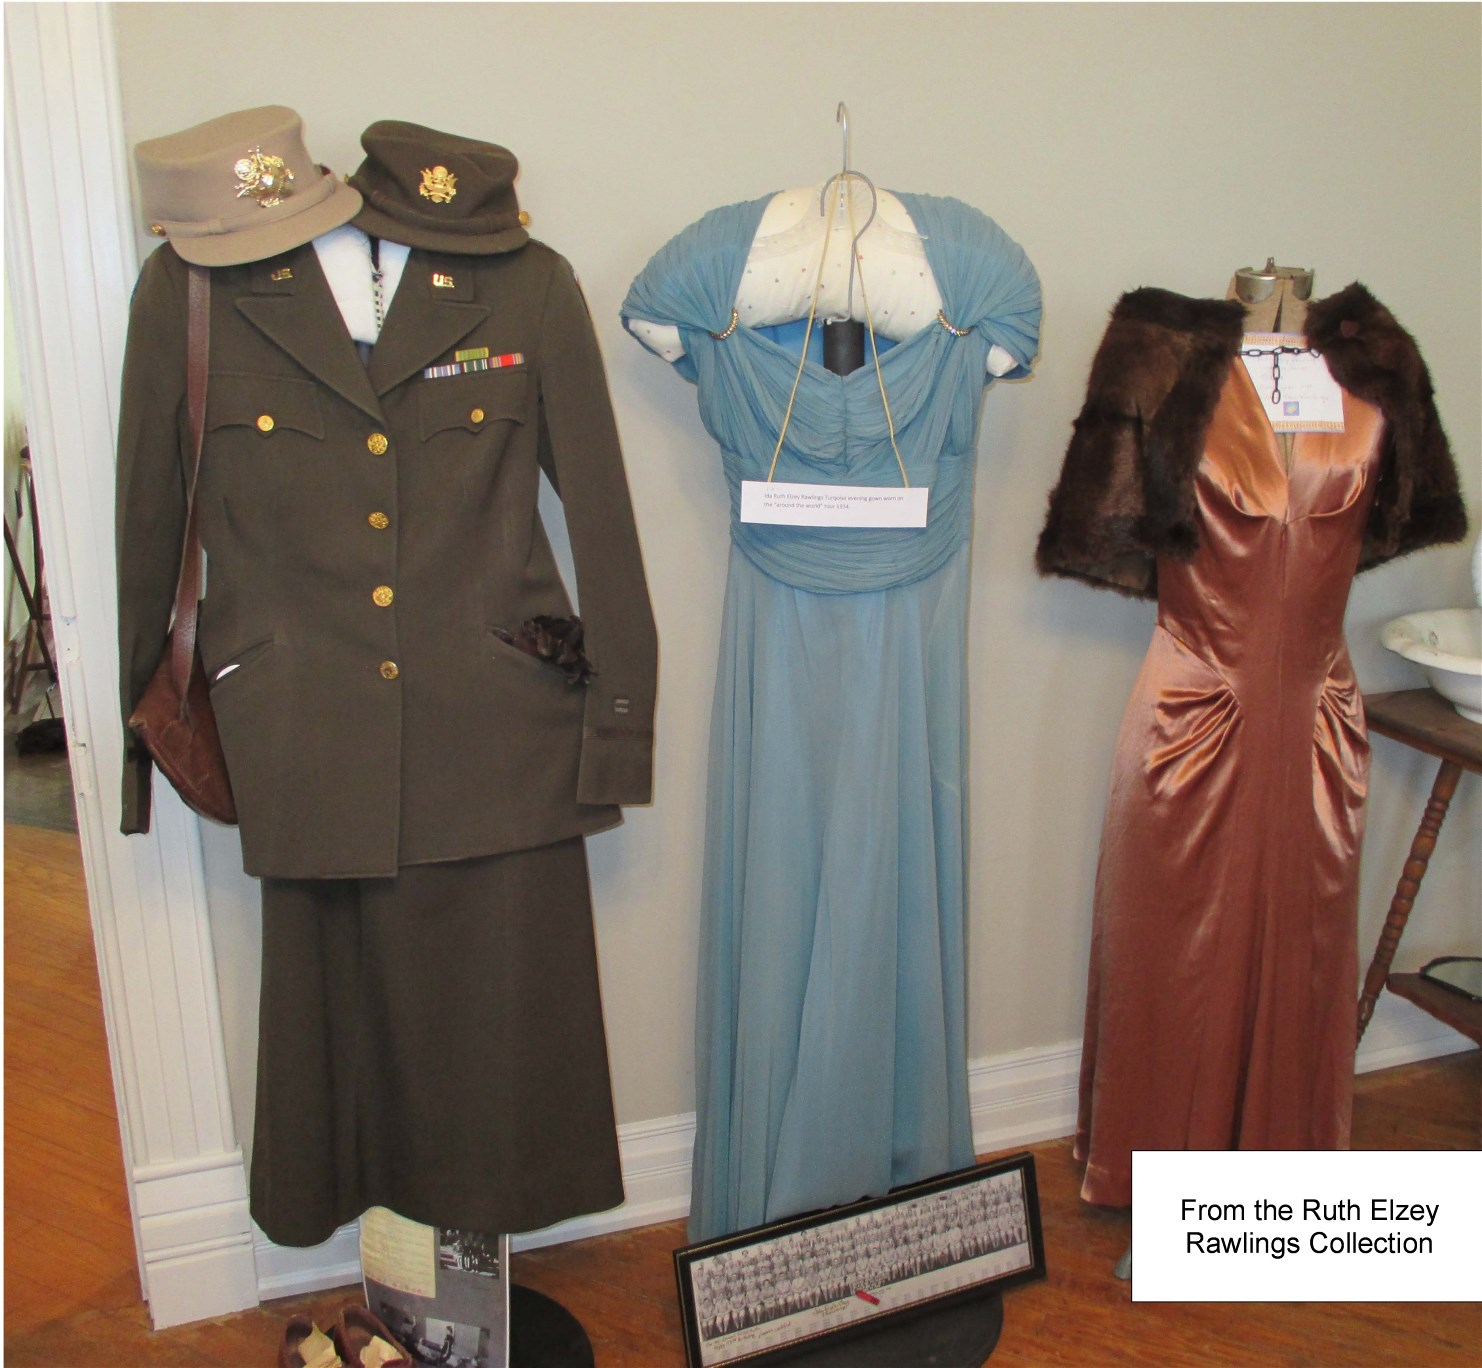 Clothing worn by Ruth Elzey